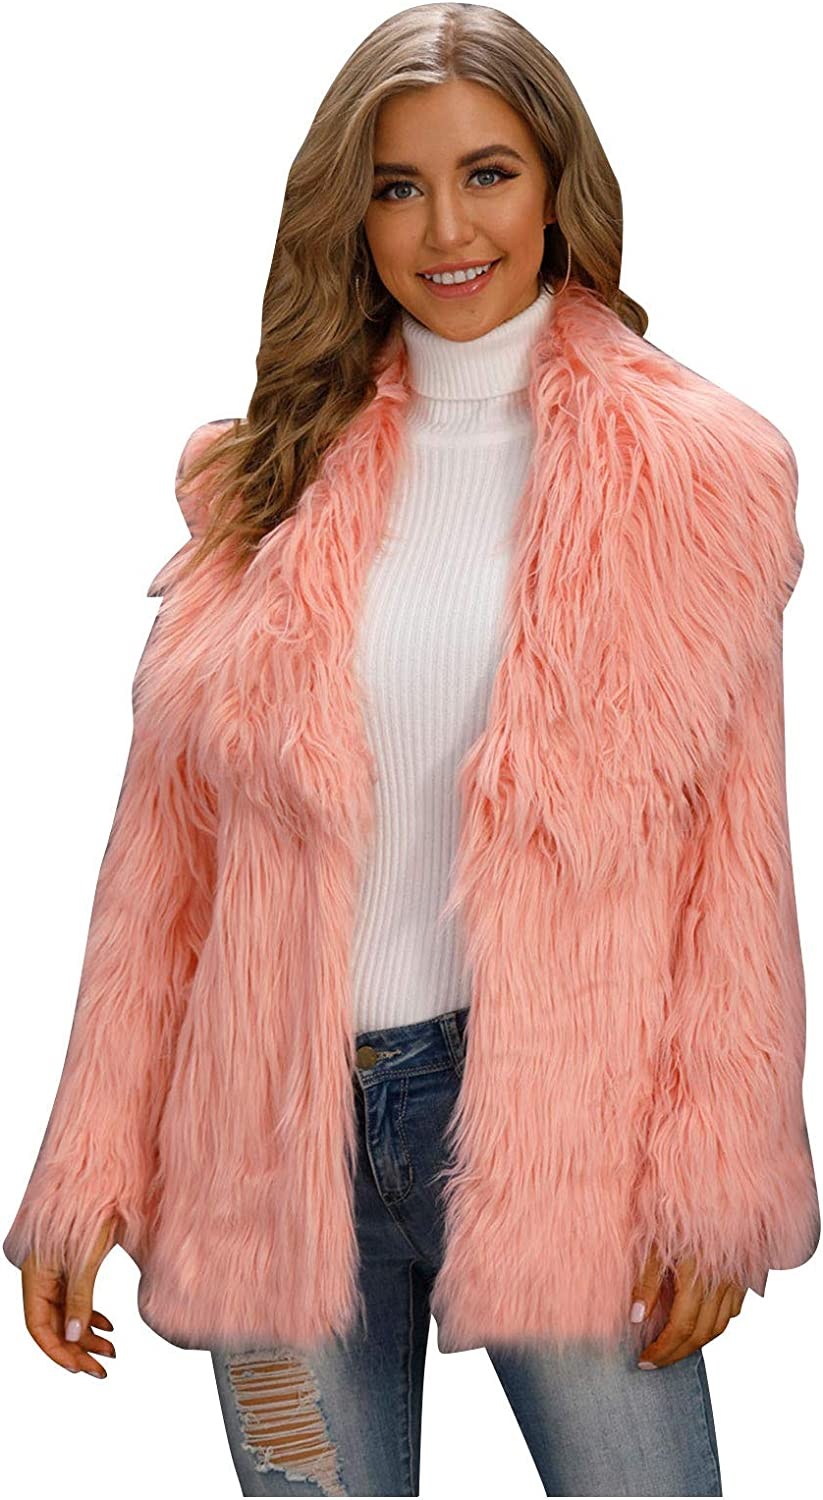 Women's It is very popular Winter Latest item Warm Coat Jacket Club Cardigan Party Out Cocktail